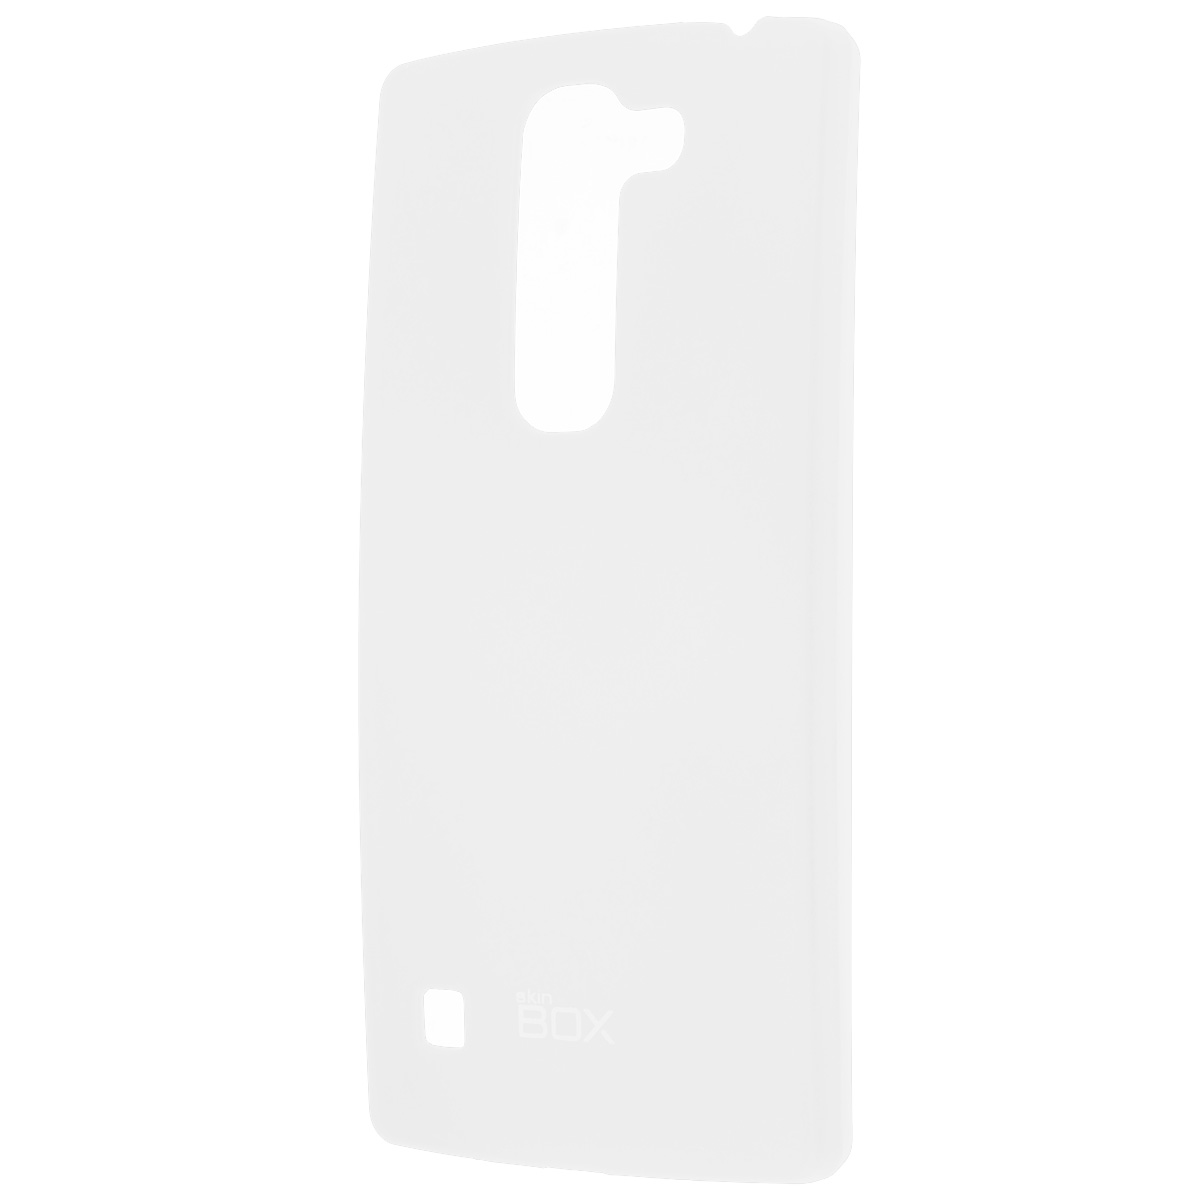 цена на Skinbox Shield 4People чехол для LG Spirit, White